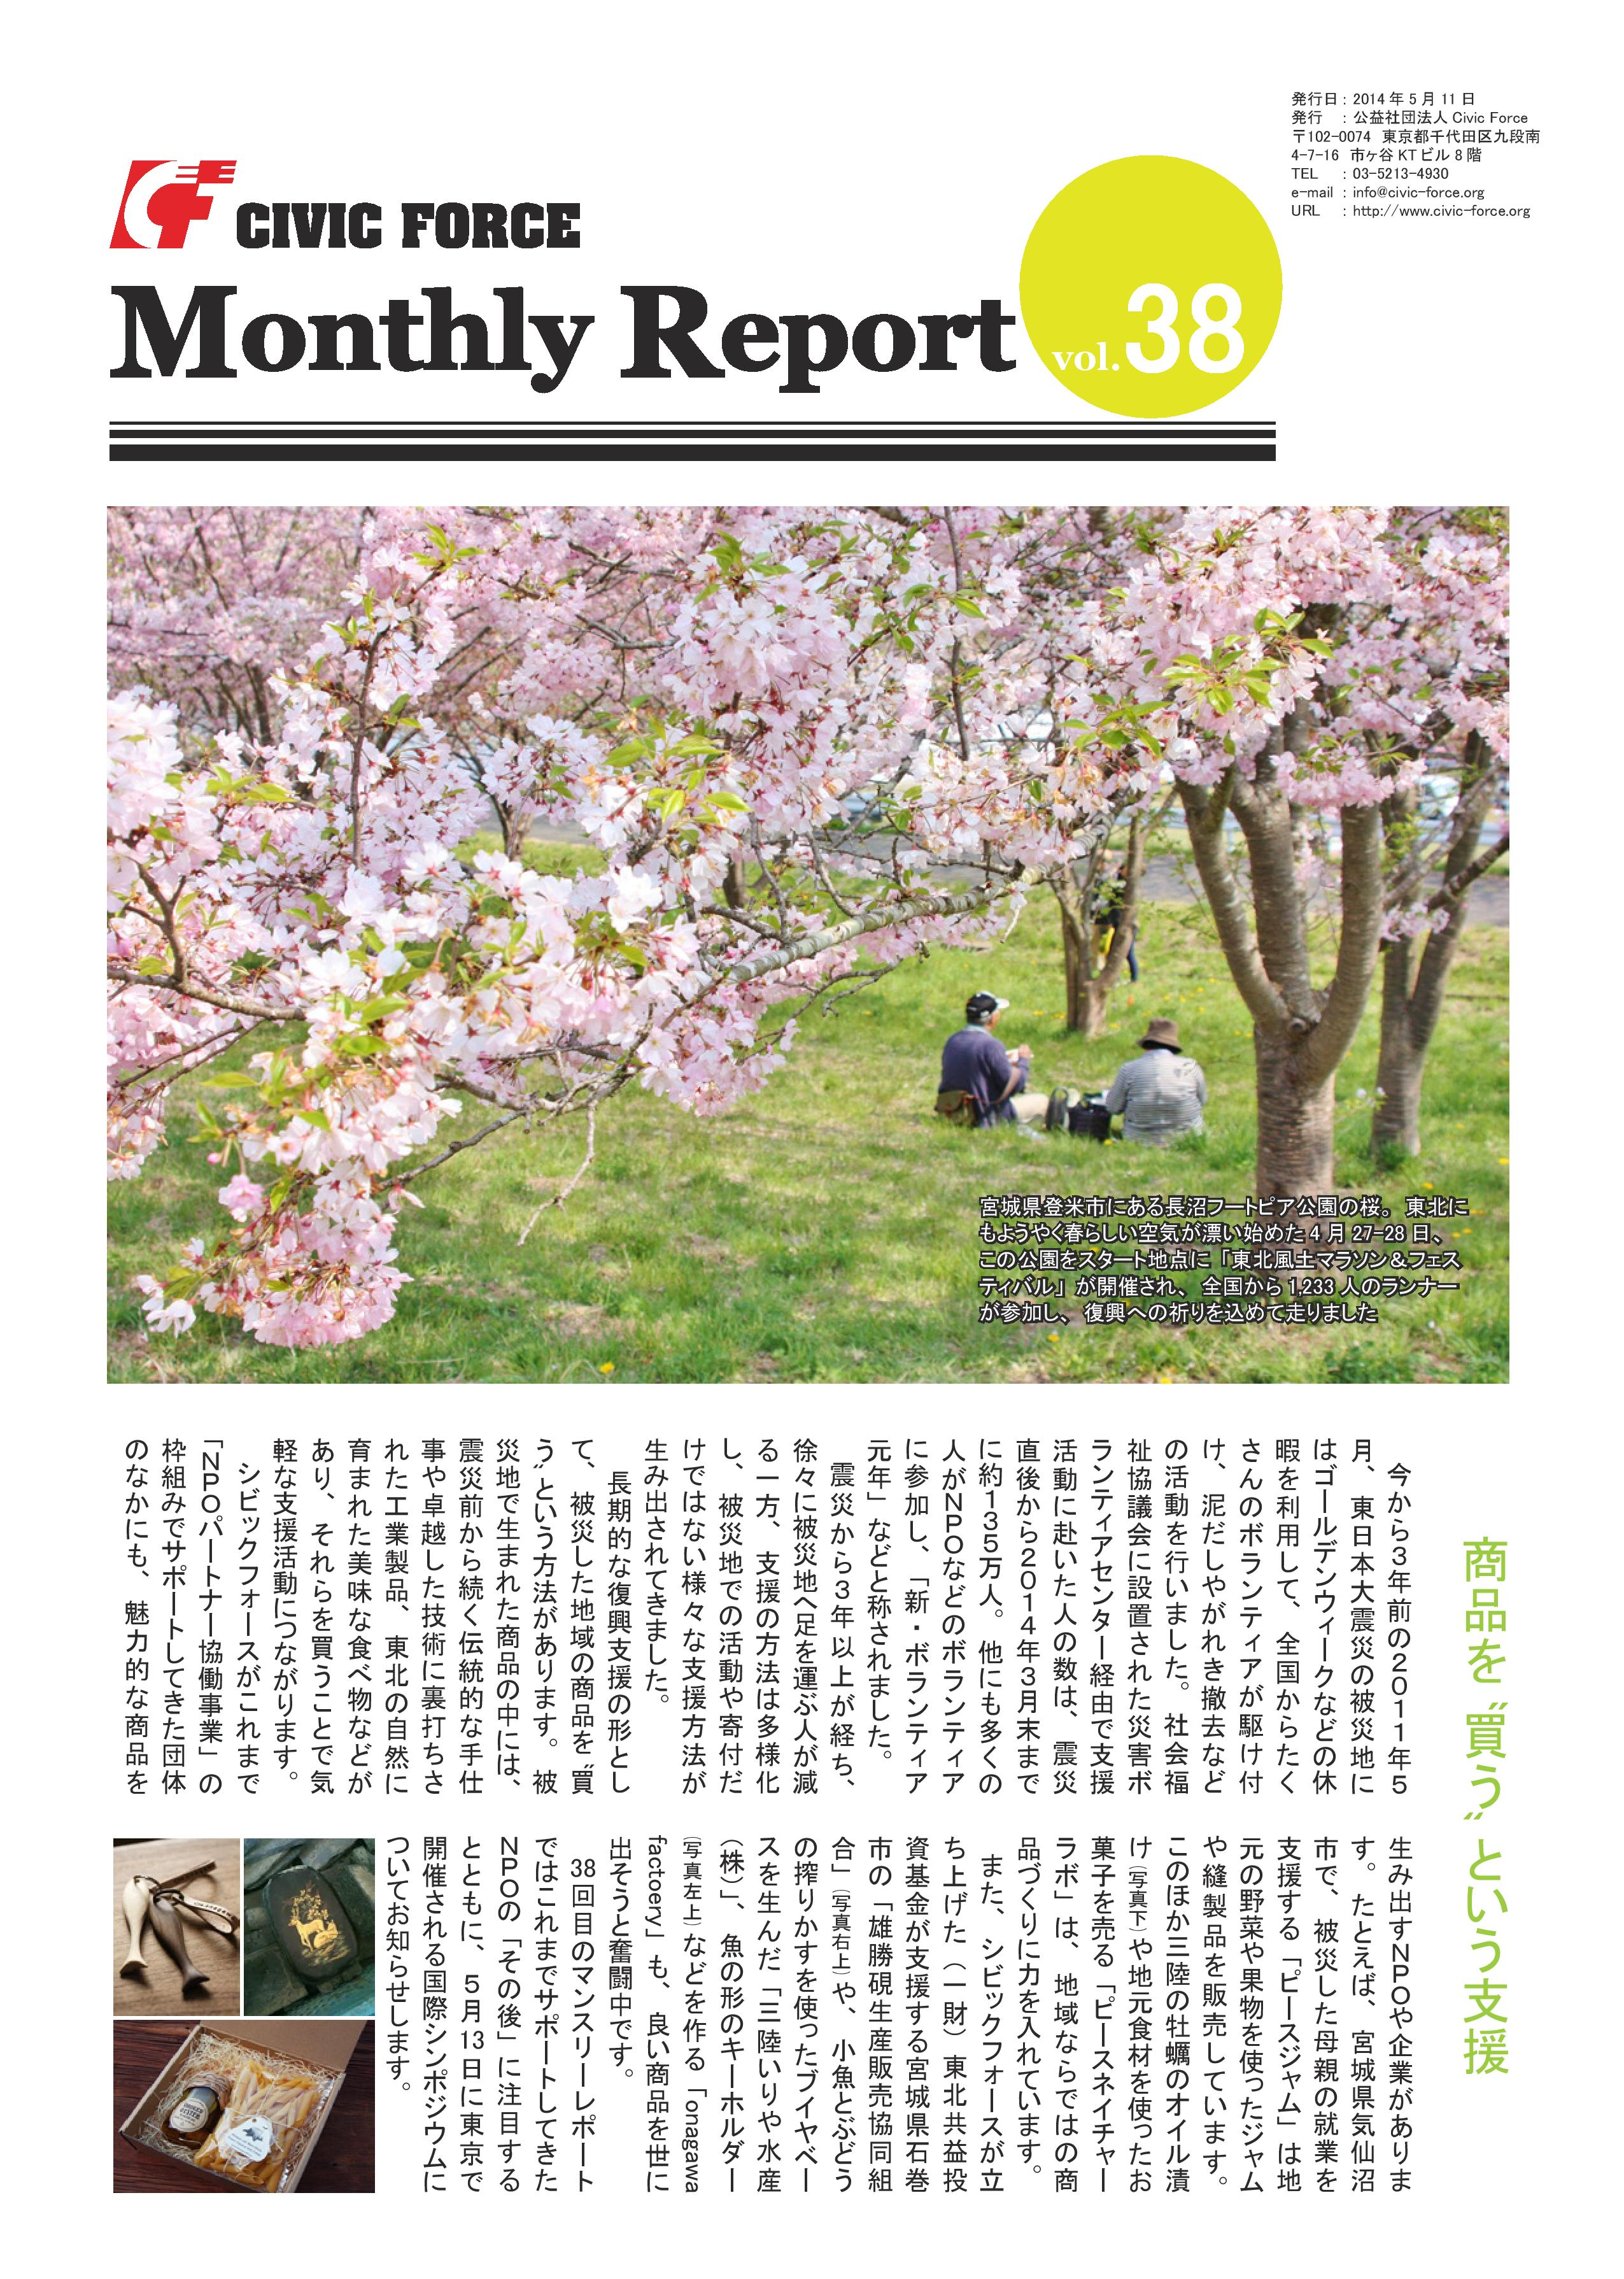 http://www.civic-force.org/news/pdf/MonthlyReport%20vol.38.pdf